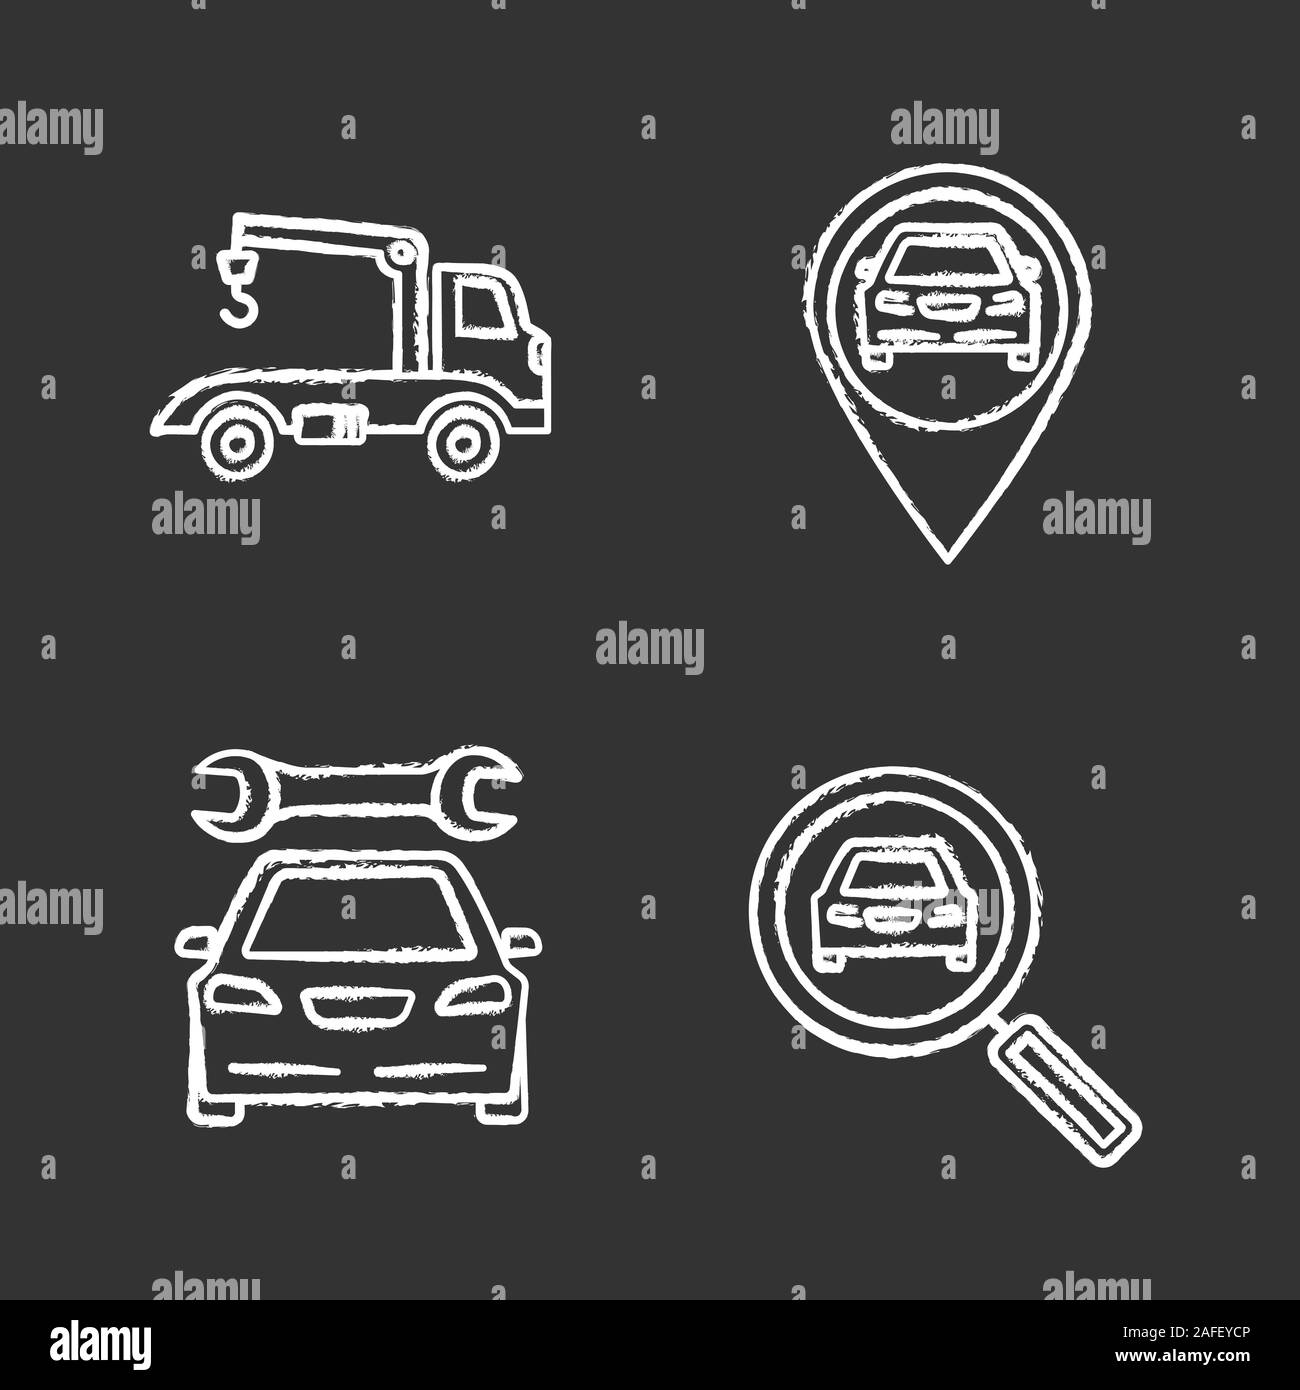 Auto workshop chalk icons set. Tow truck, gps navigation, repair service, car searching. Isolated vector chalkboard illustrations Stock Vector